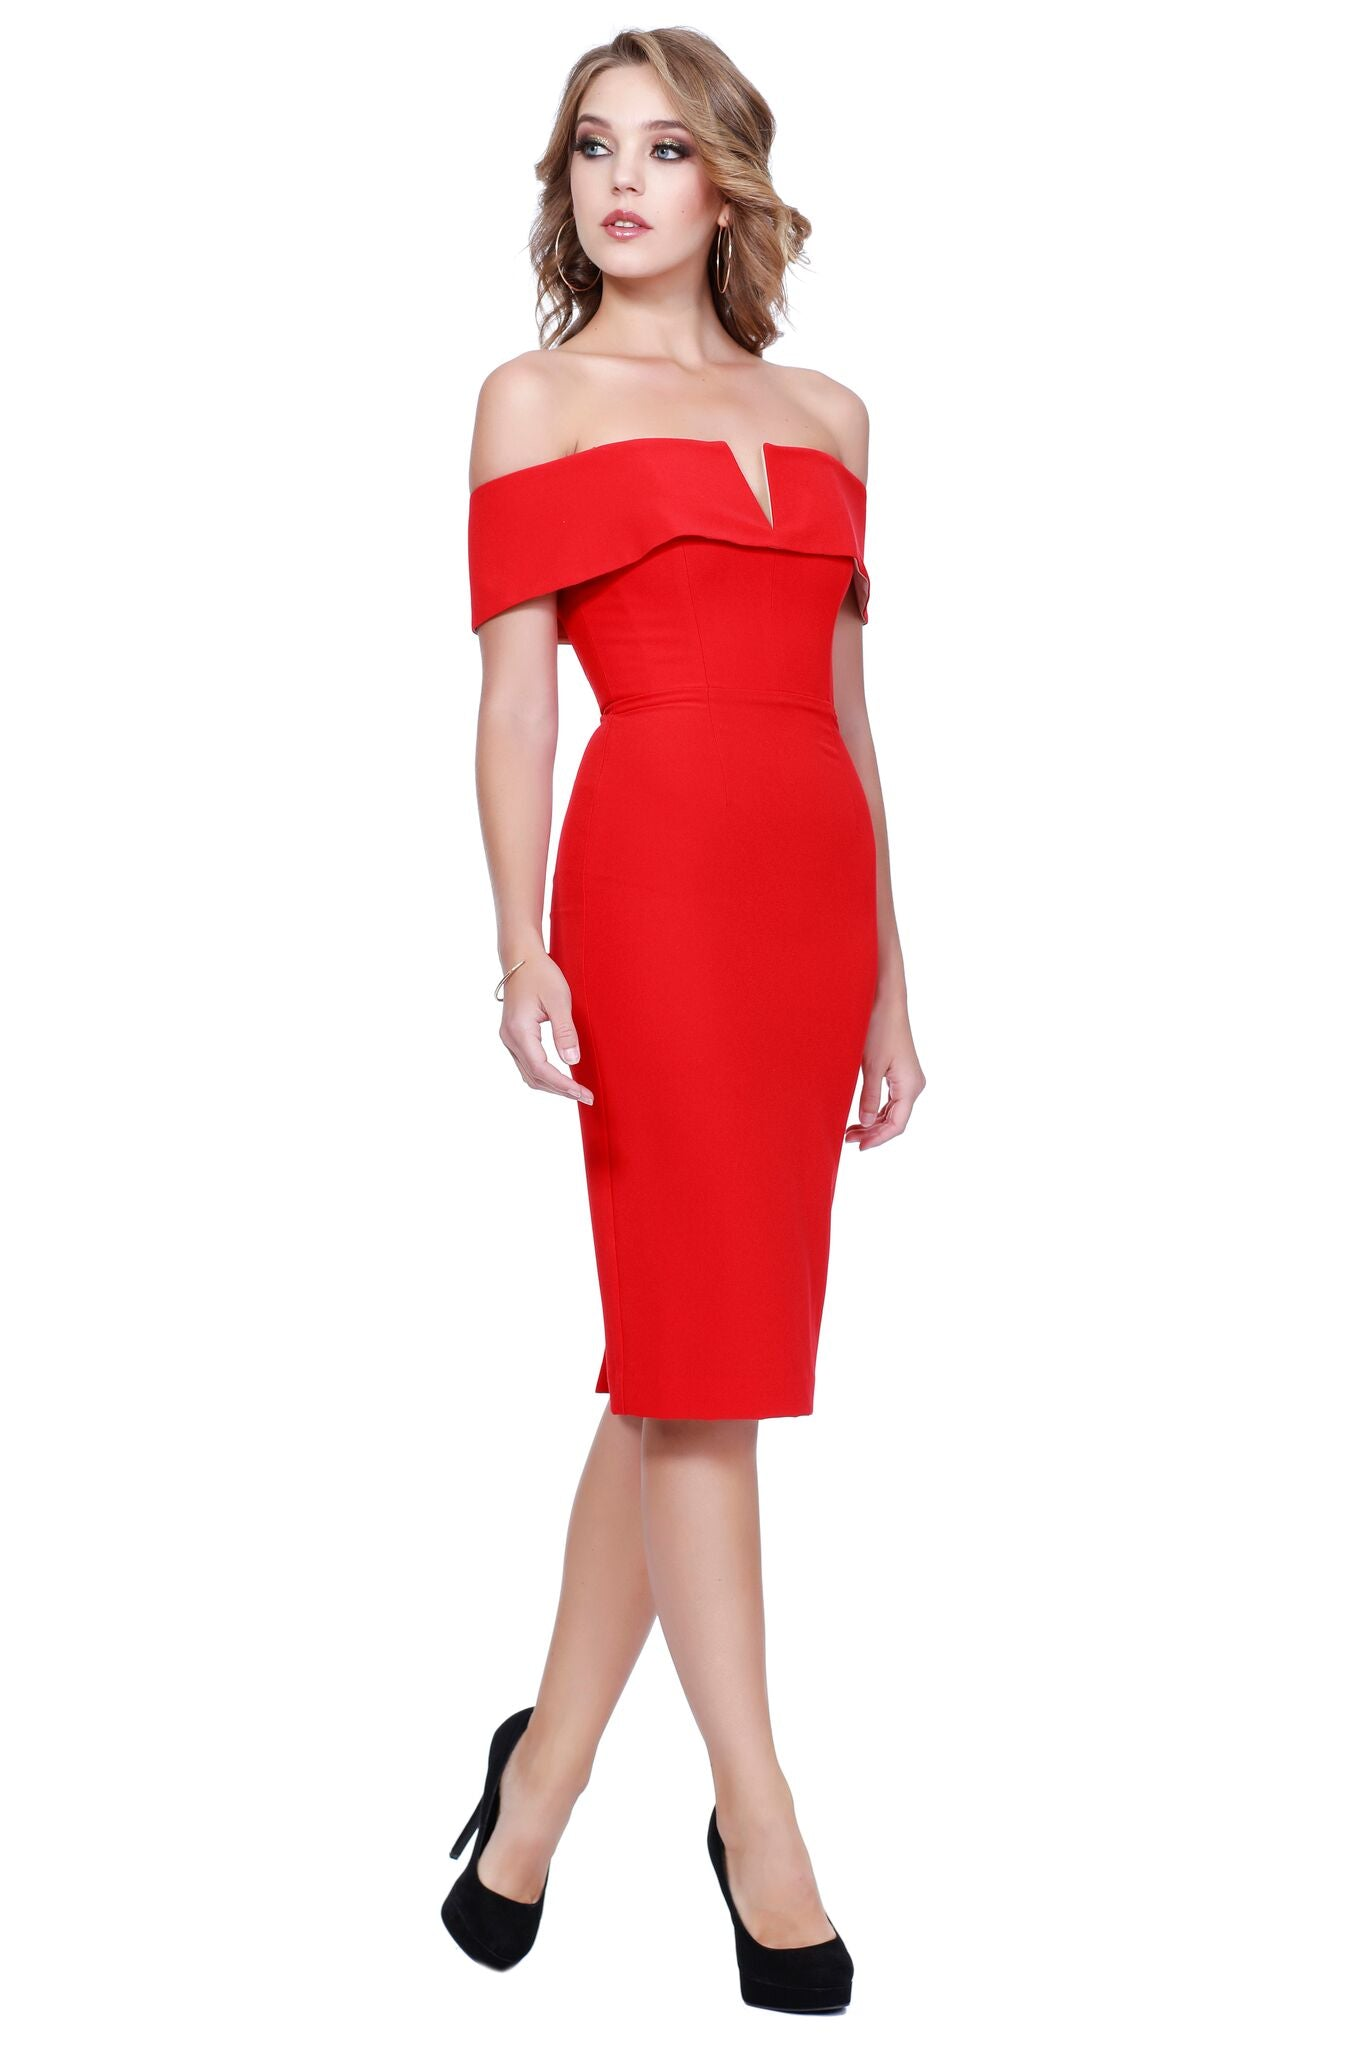 Off The Shoulder Body Hugging Pencil Style Red Dress 31915